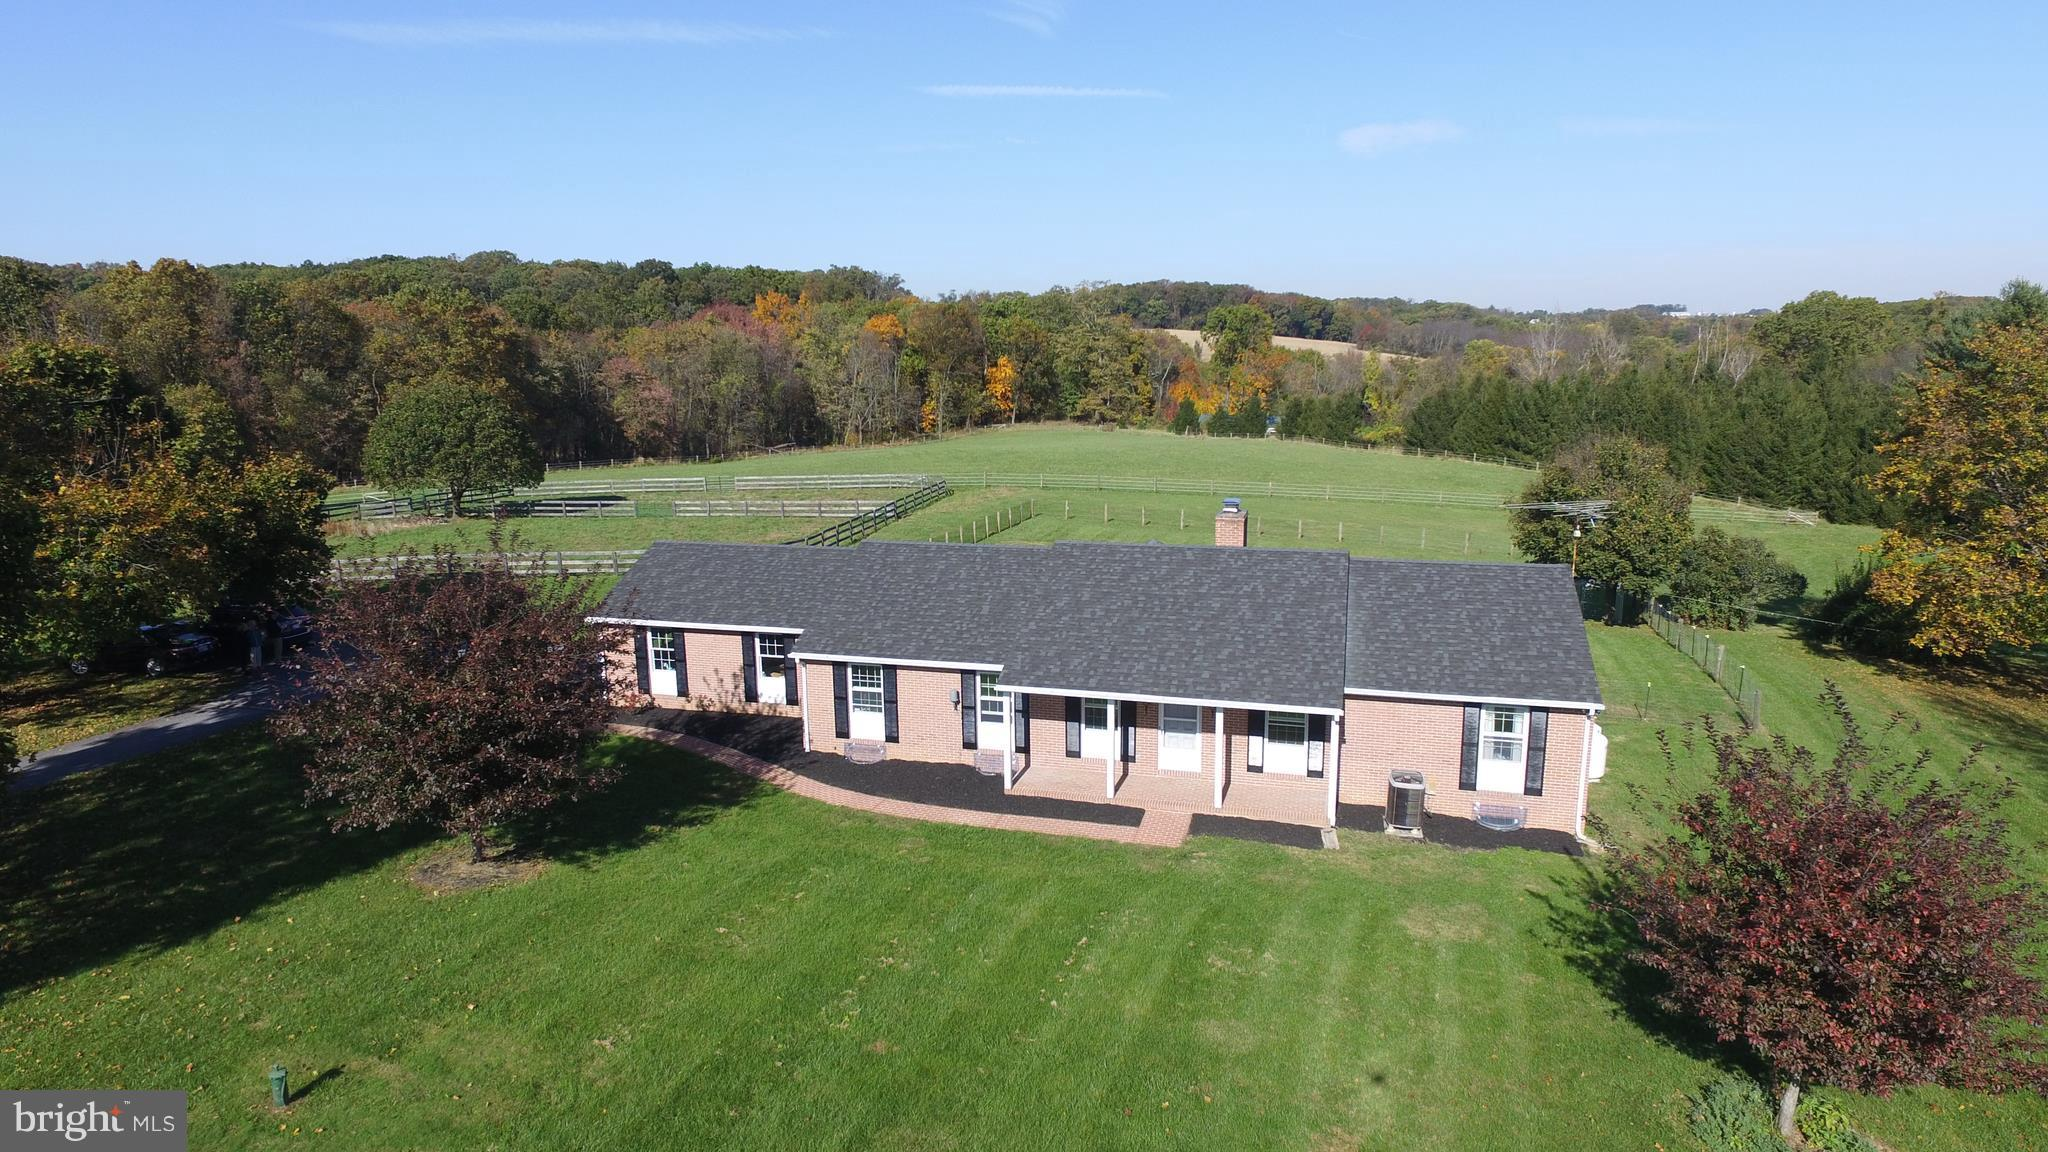 4924 OLD QUARTER ROAD, UPPERCO, MD 21155